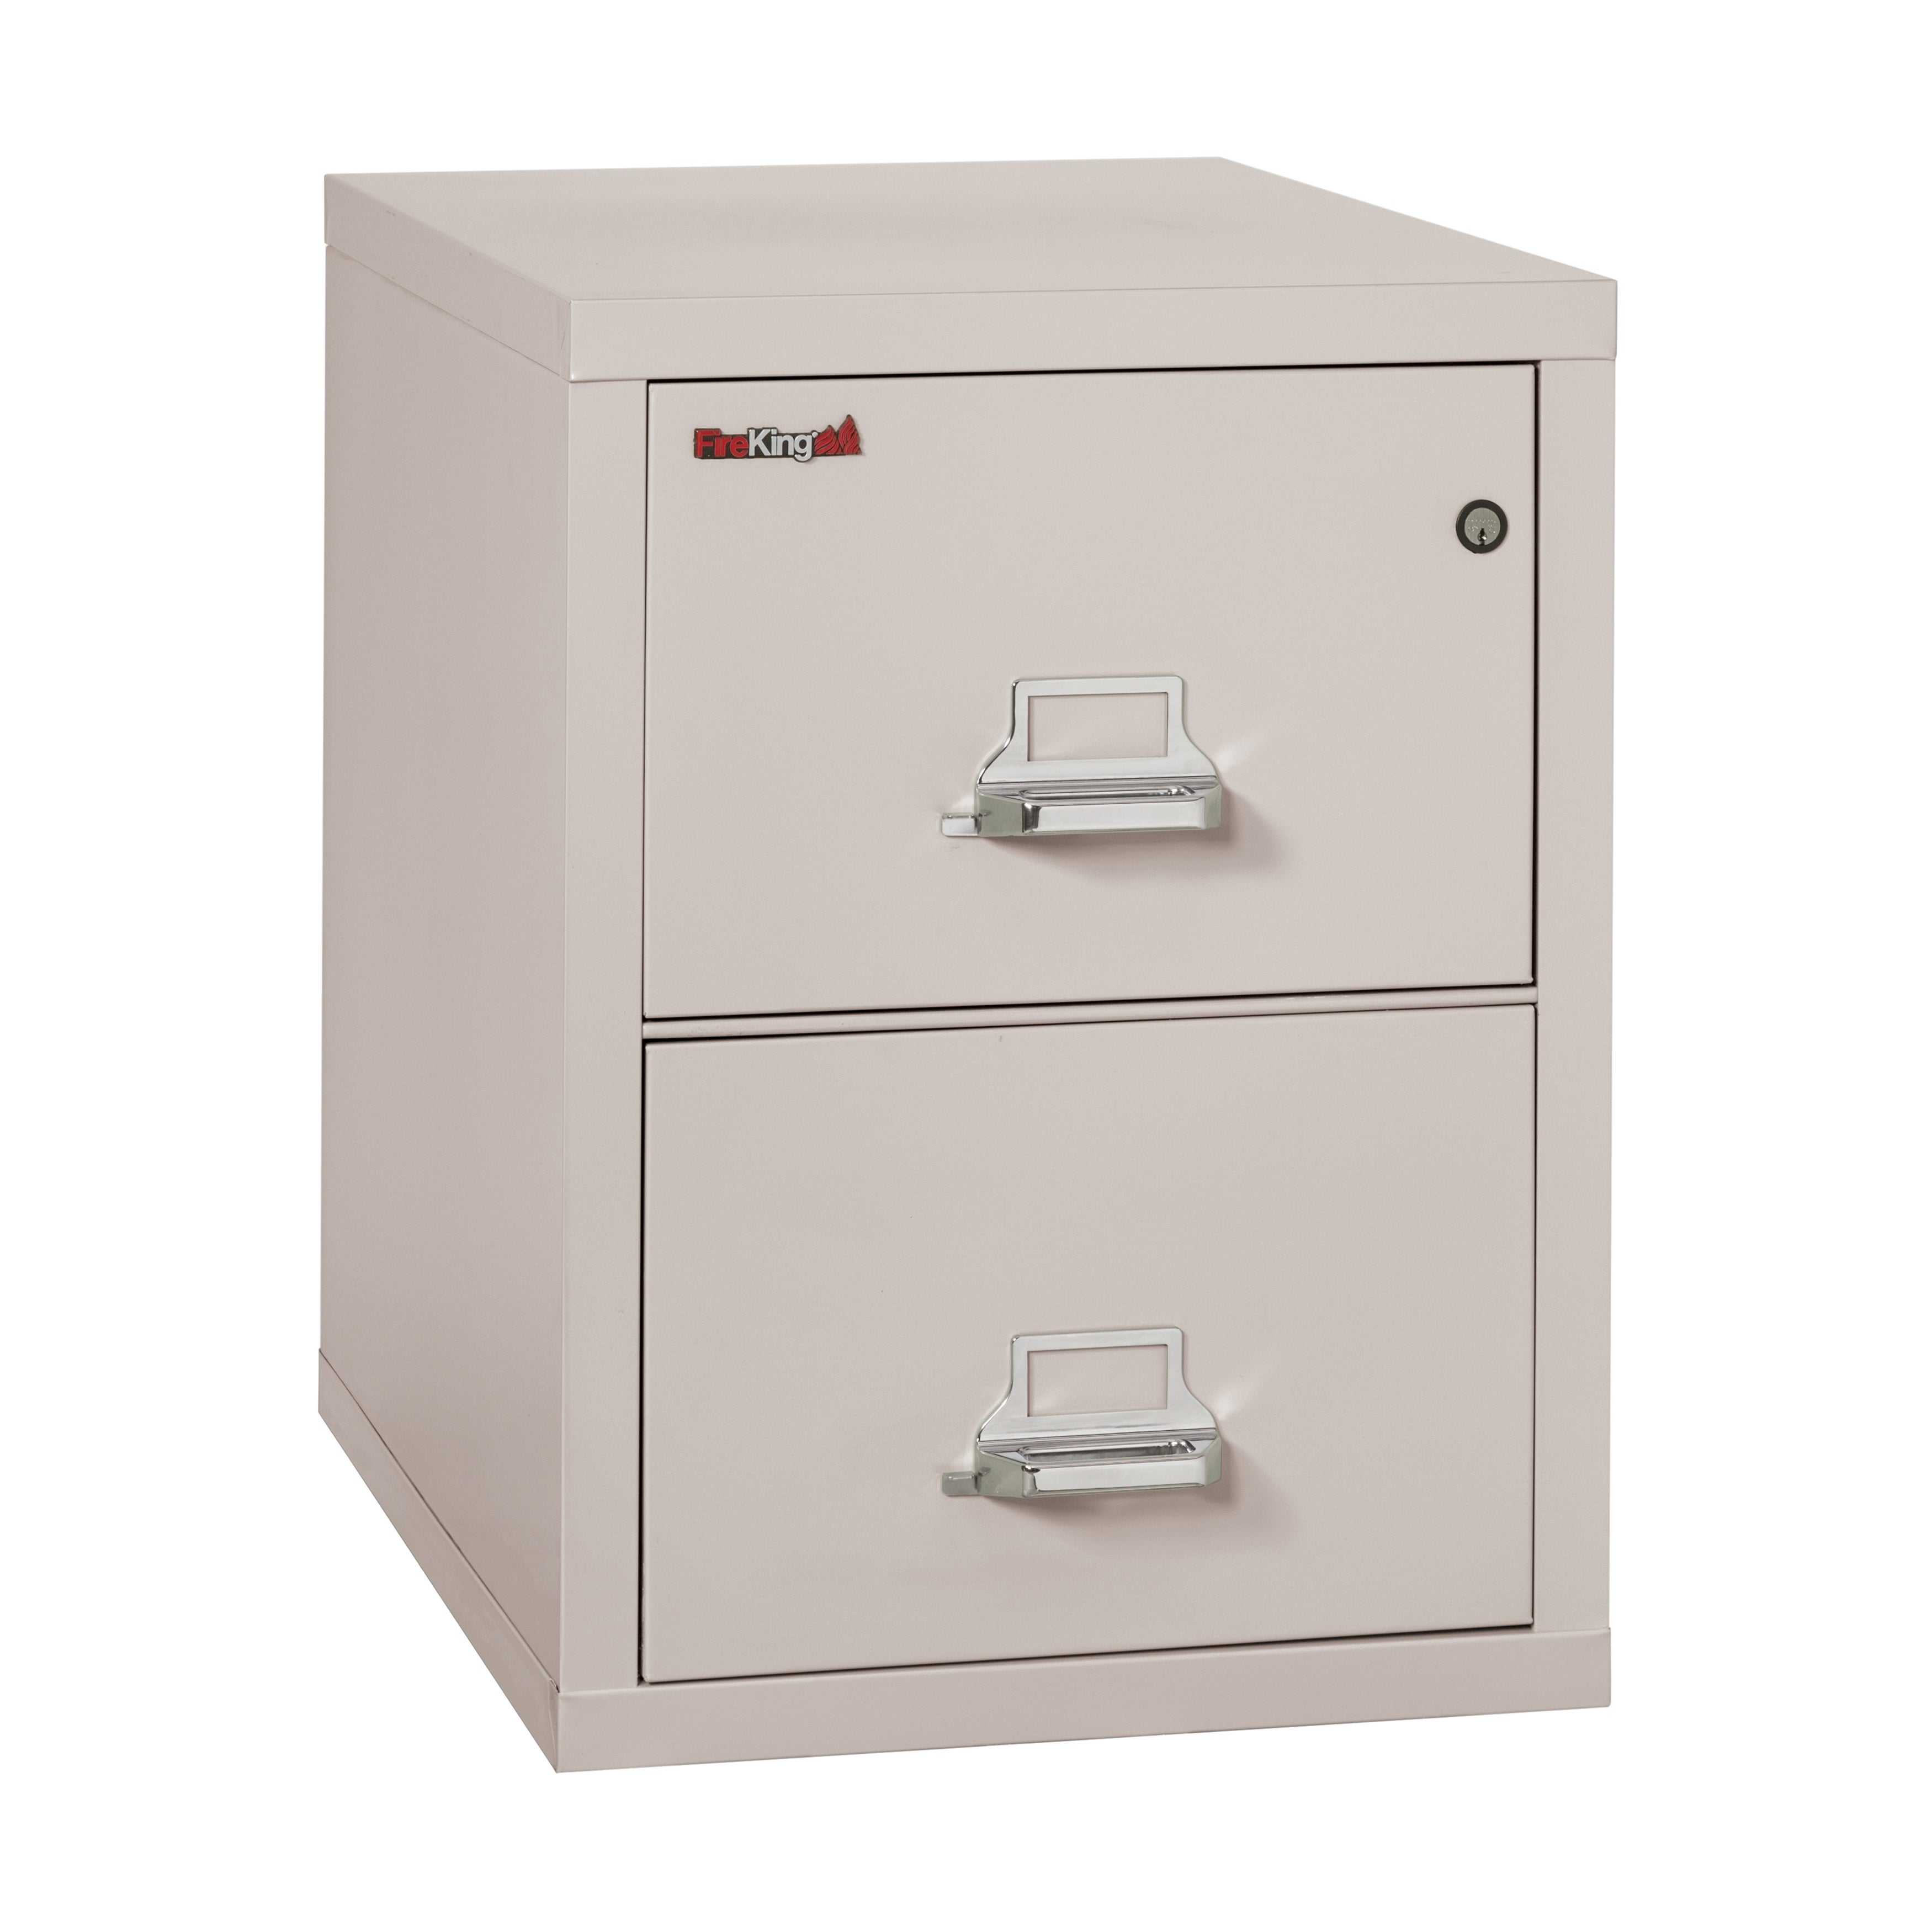 Fireking Fireproof Vertical File Cabinet Legal 2 Drawers 31 5 D On Free Shipping Today 9315600